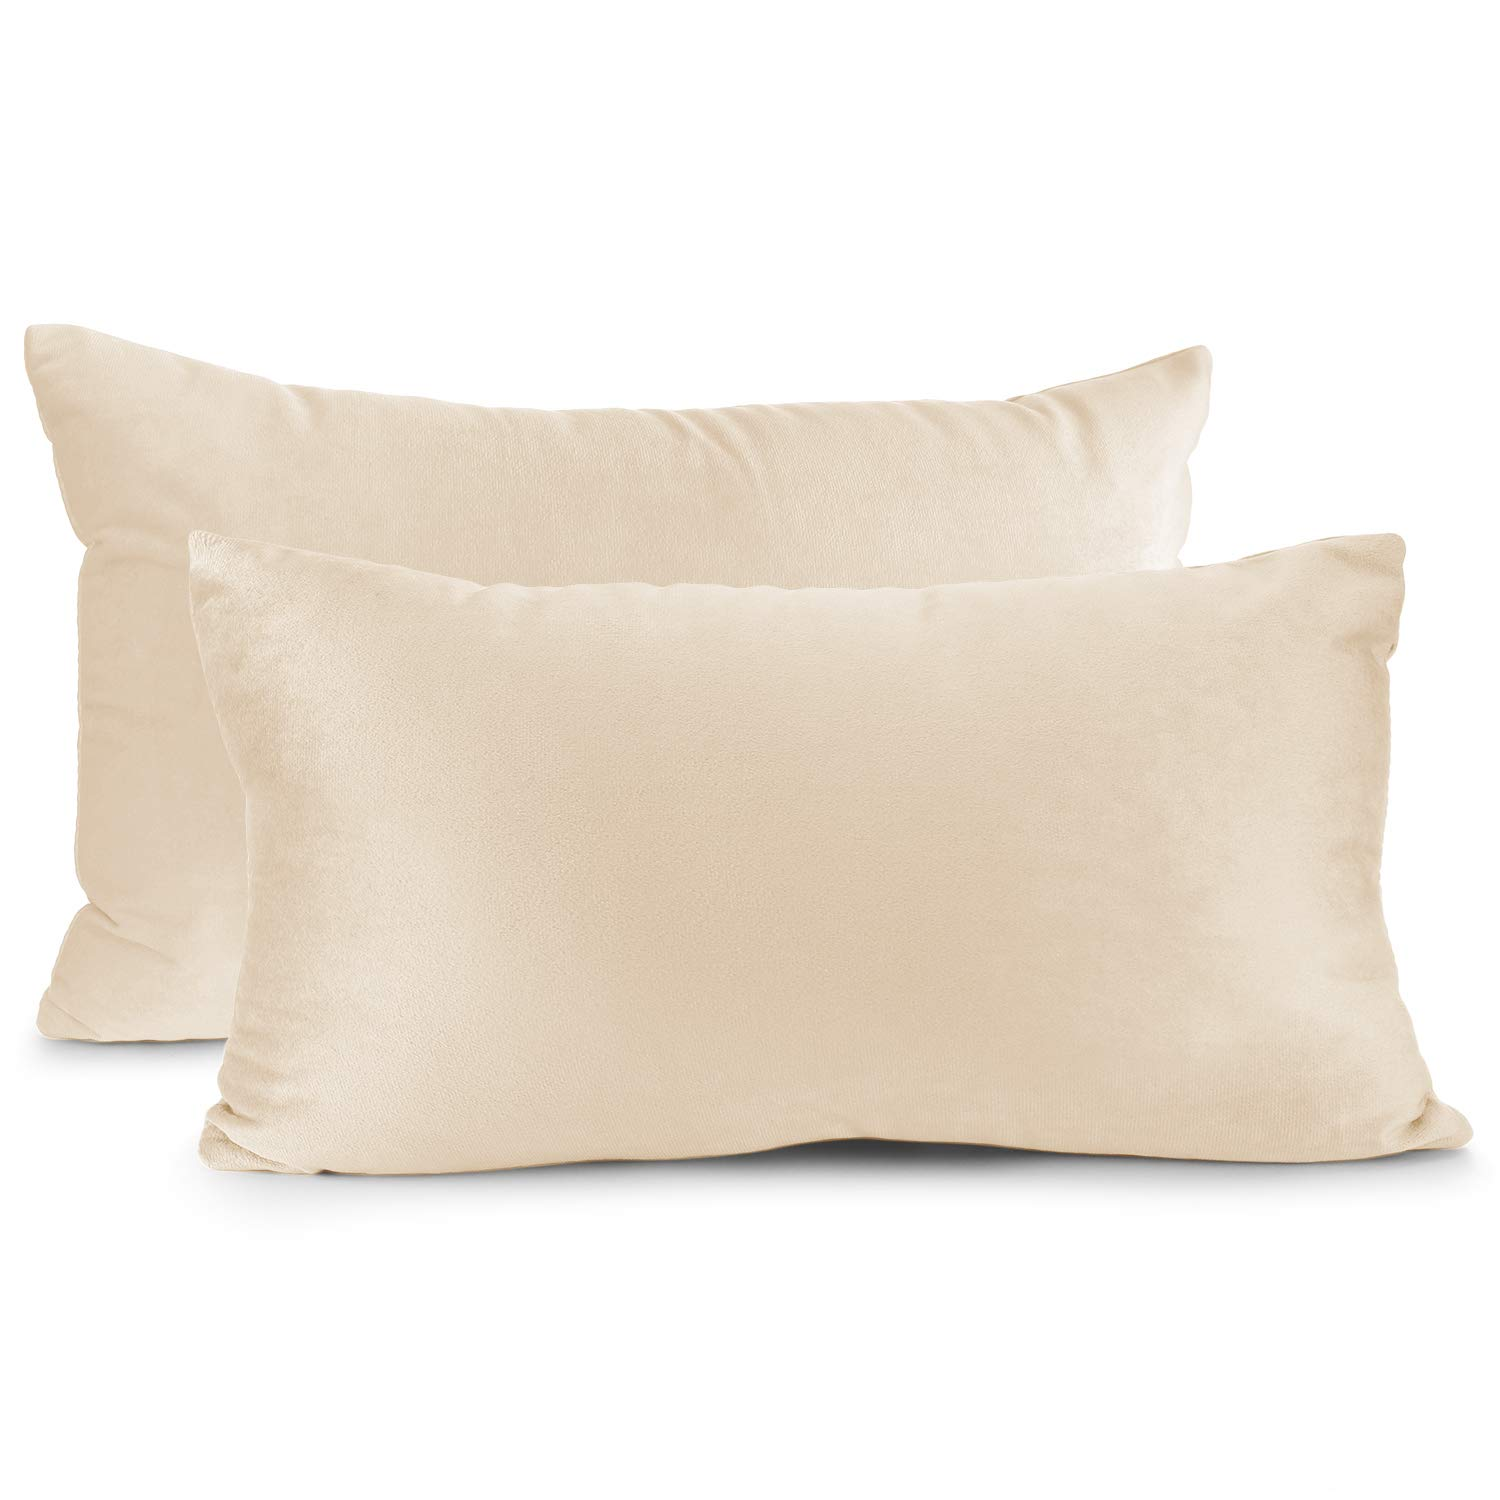 """Nestl Bedding Throw Pillow Cover 12"""" x 20"""" Soft Square Decorative Throw Pillow Covers Cozy Velvet Cushion Case for Sofa Couch Bedroom, Set of 2, Beige Cream"""